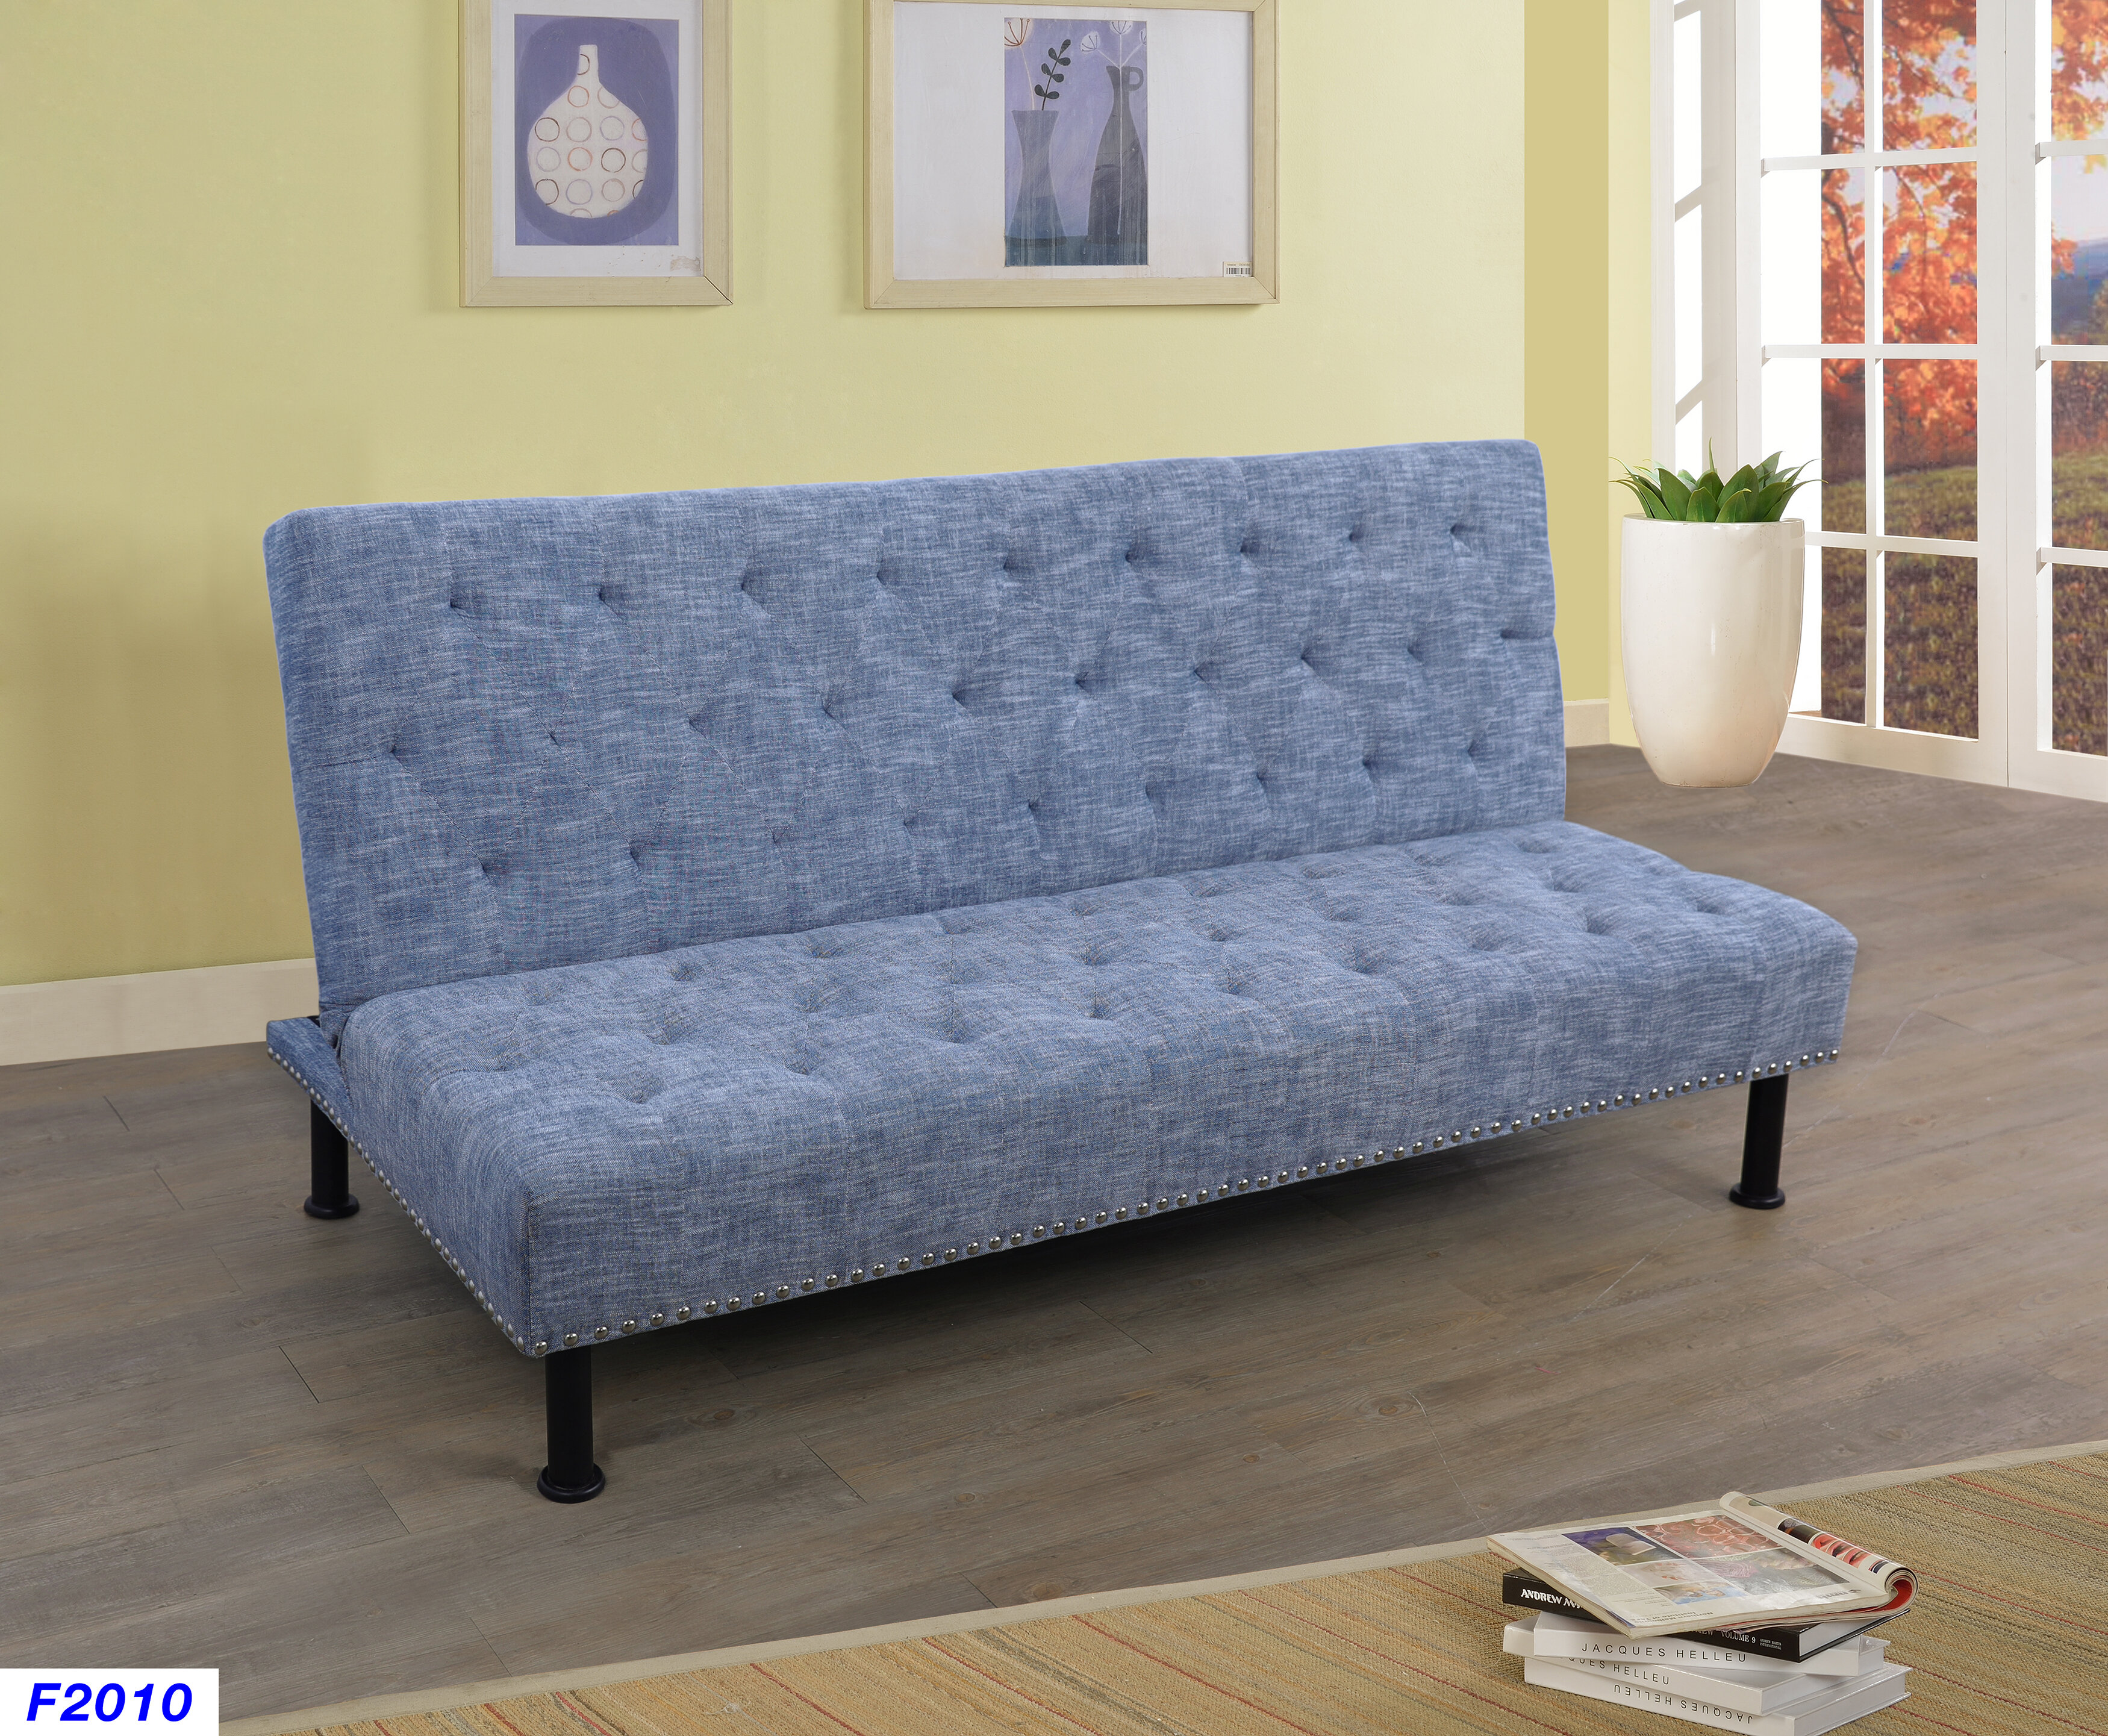 Miraculous Camron Futon Bed Convertible Sofa Gmtry Best Dining Table And Chair Ideas Images Gmtryco